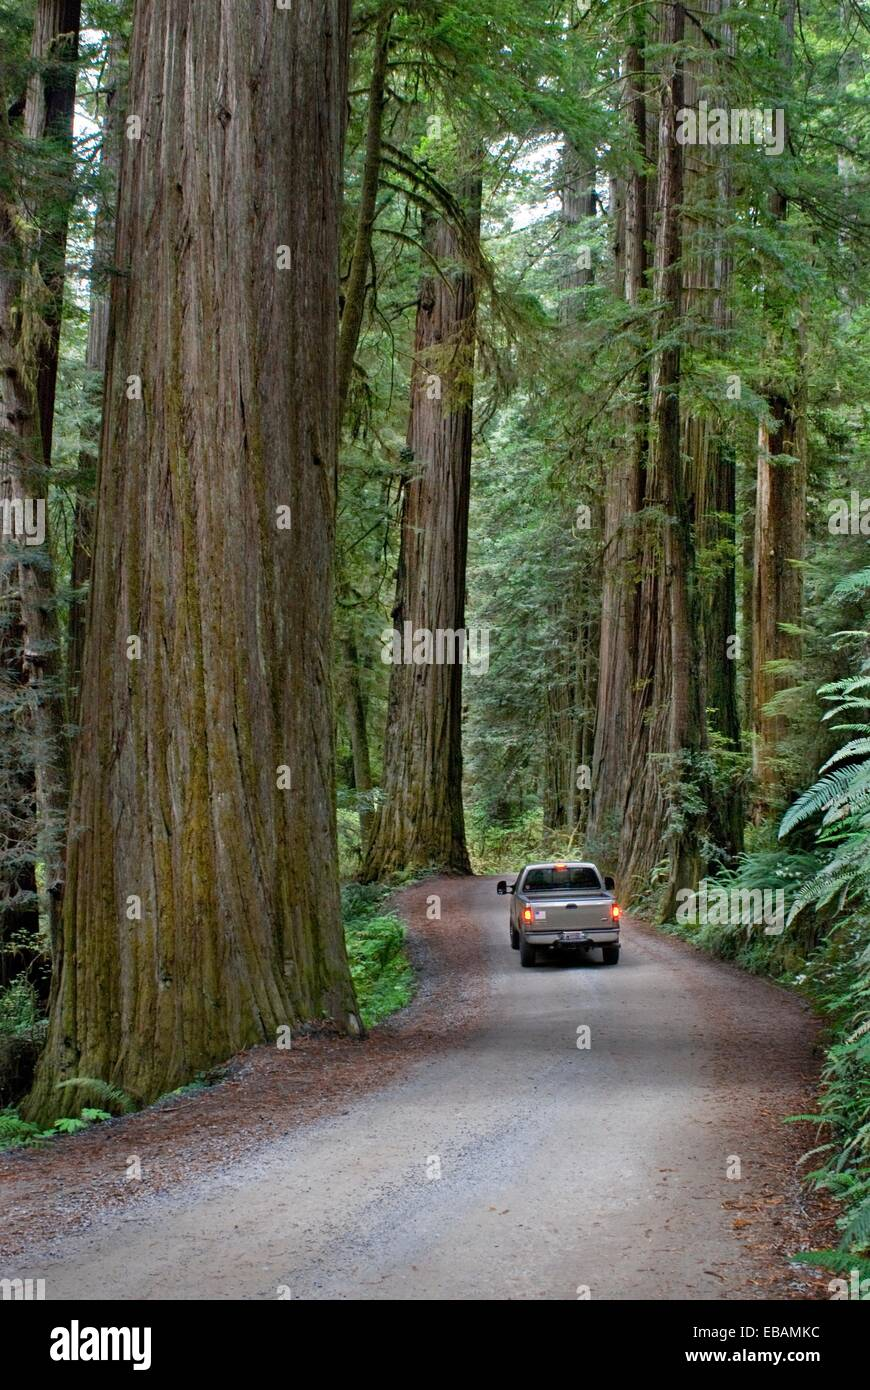 Primitive road through old growth coast redwood forest Jedediah Smith Redwoods State Park Crescent City California - Stock Image